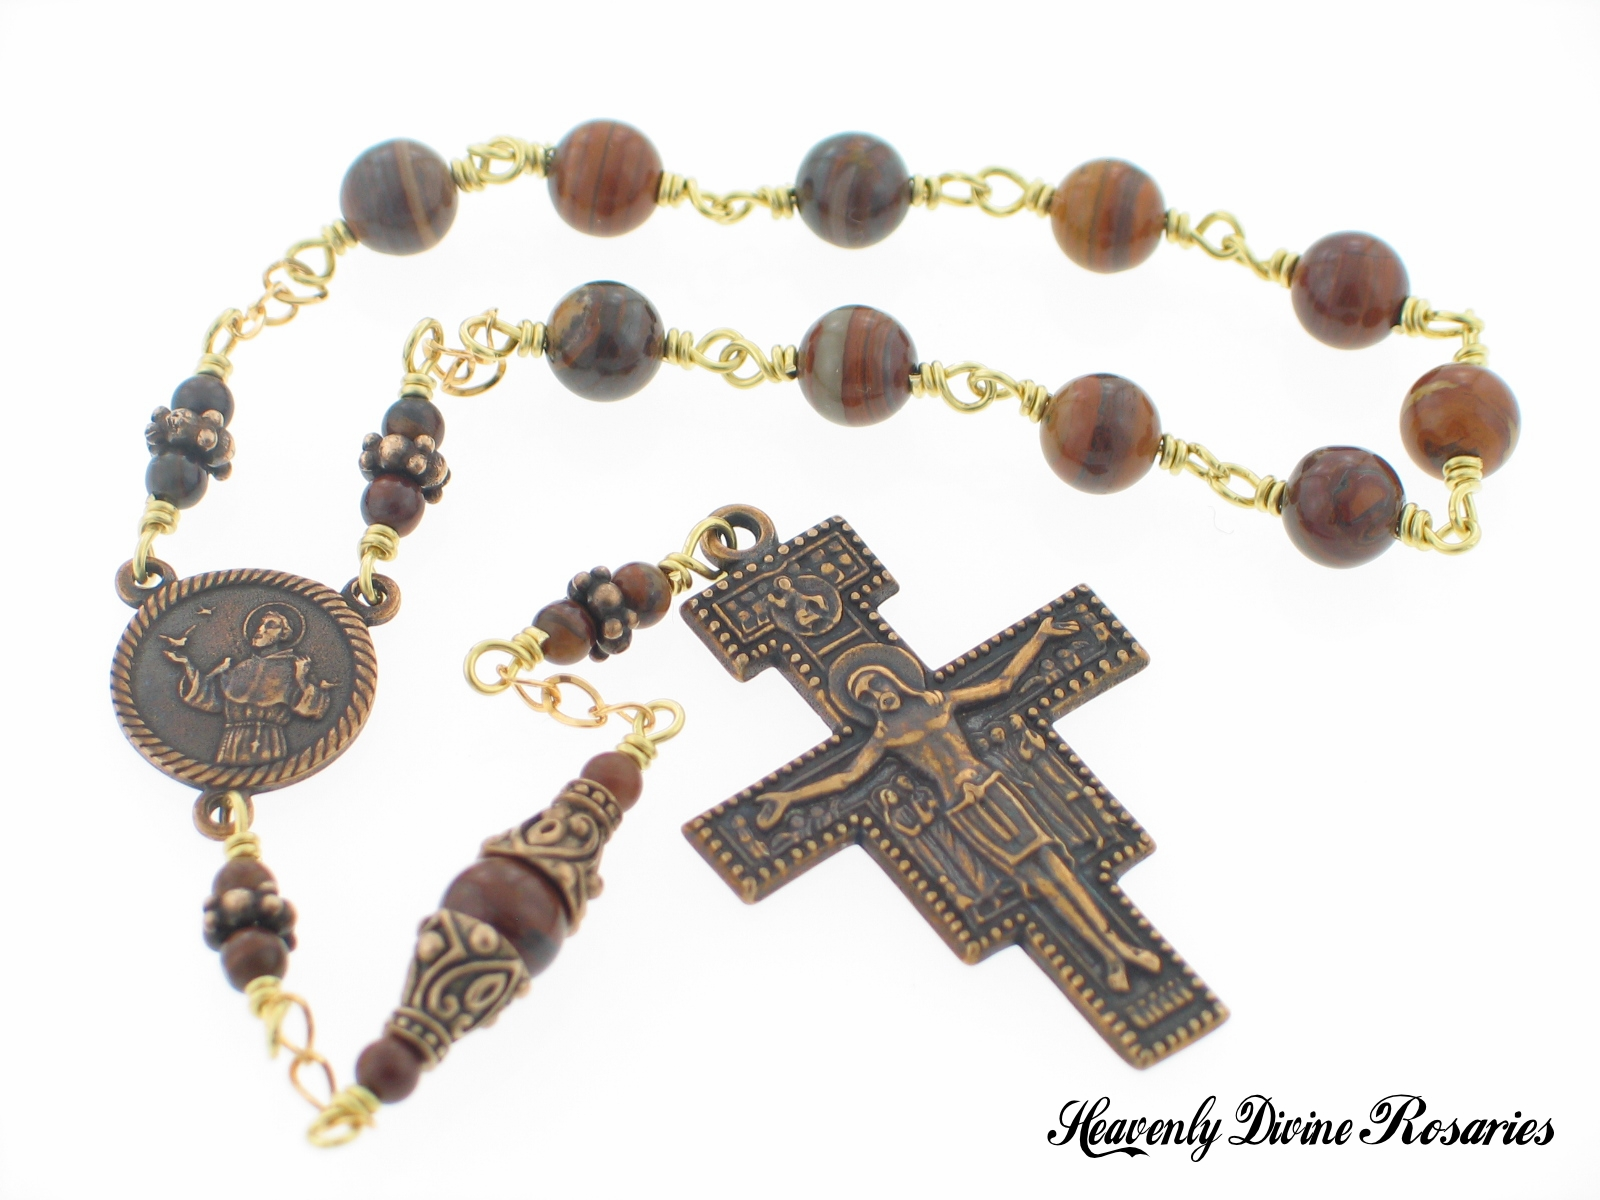 St Francis Prayer Jupiter Jasper Pocket Rosary by Heavenly Divine